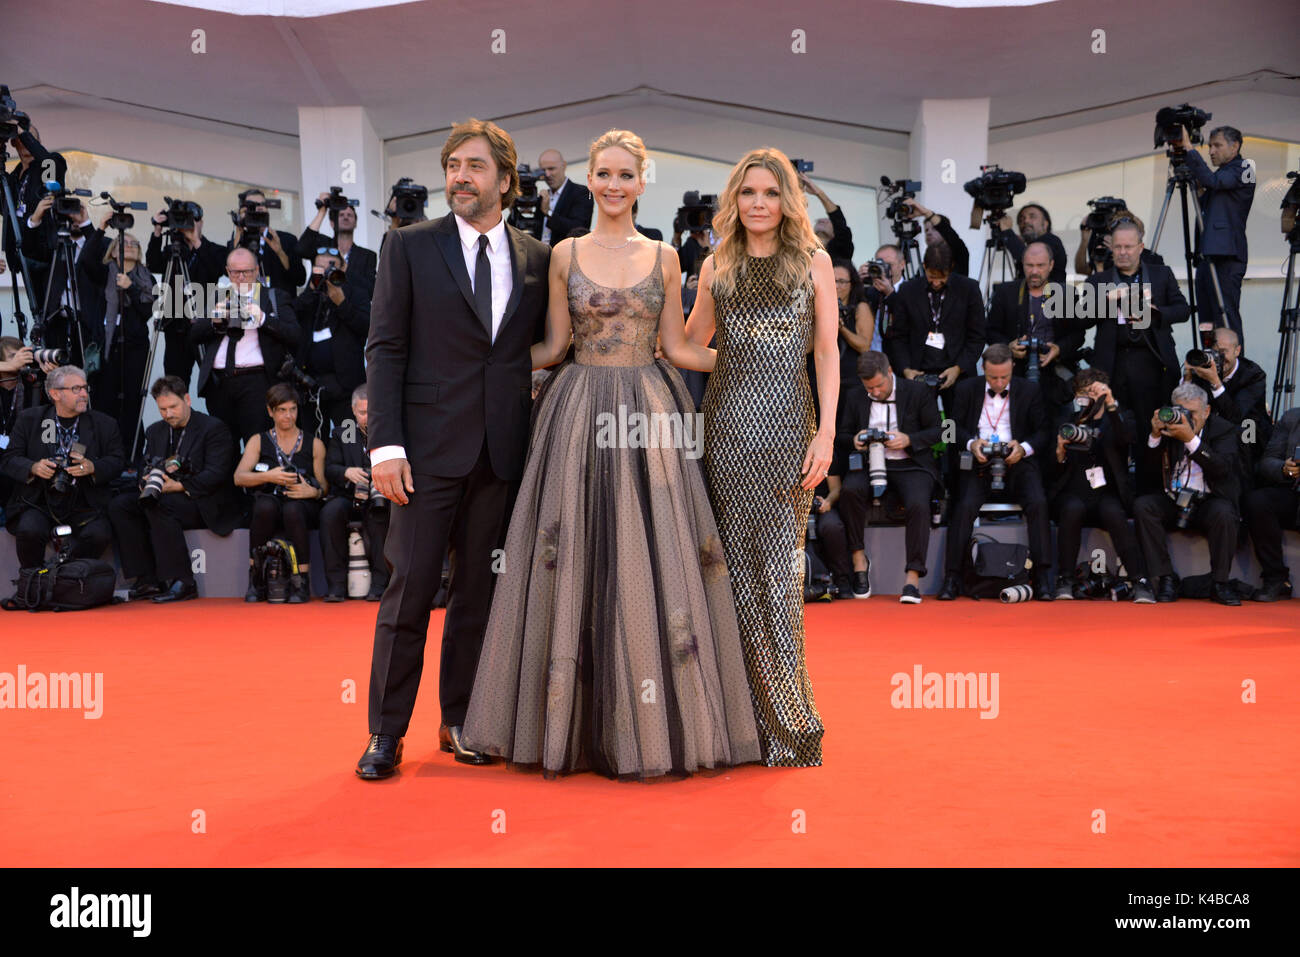 Venice, Italy. 5th September, 2017. L-R: Spanish actor Javier Bardem, Usa actress Jennifer Lawrence and Usa actress Stock Photo